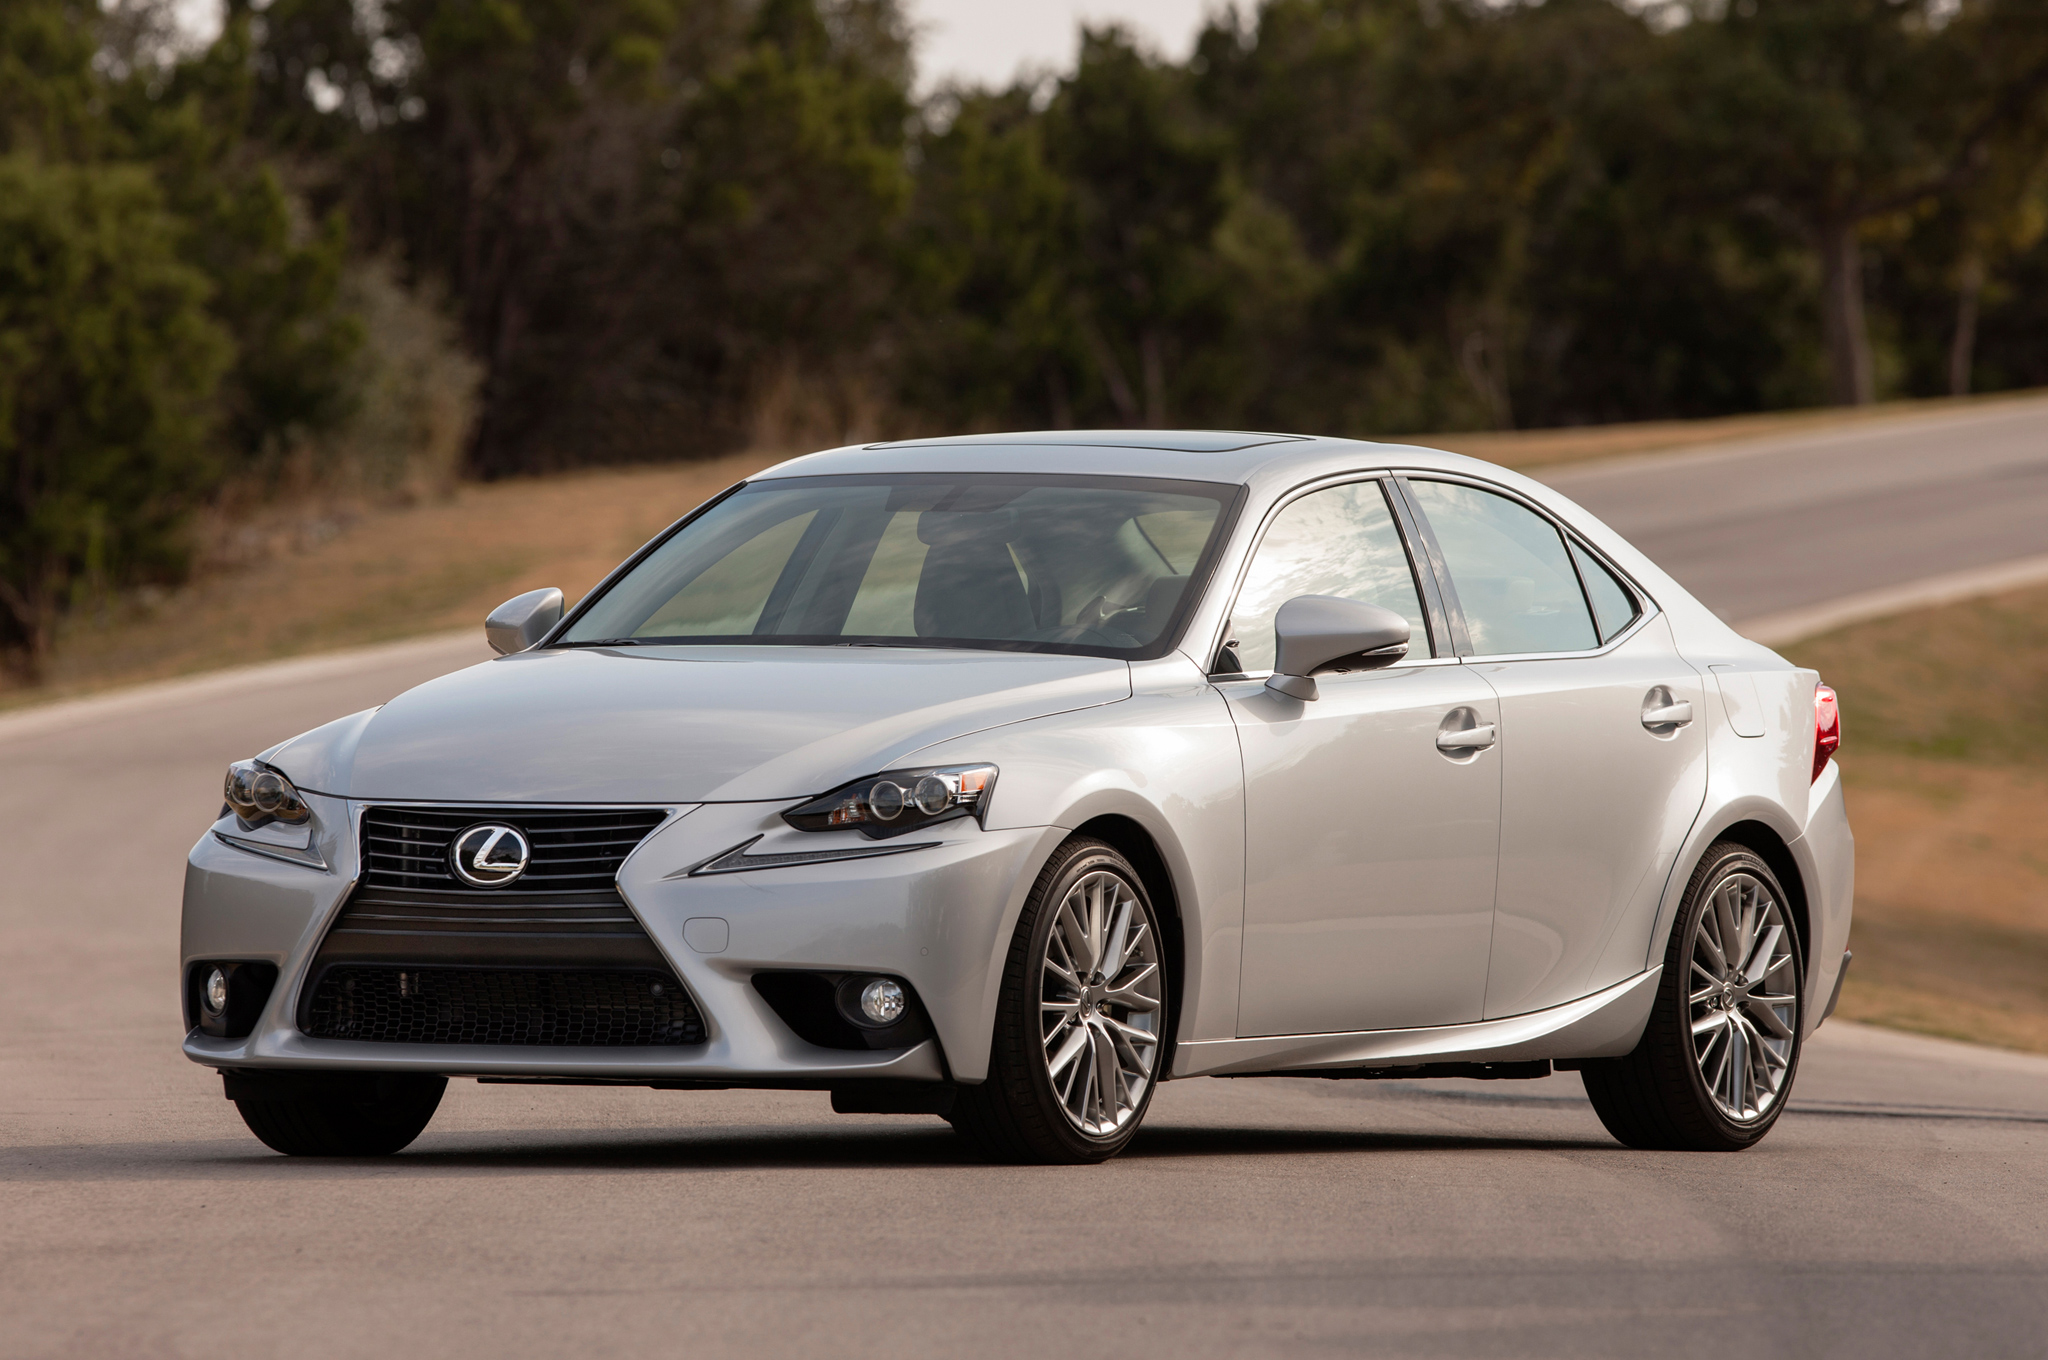 hight resolution of we hear lexus launching turbo four engine by 2015